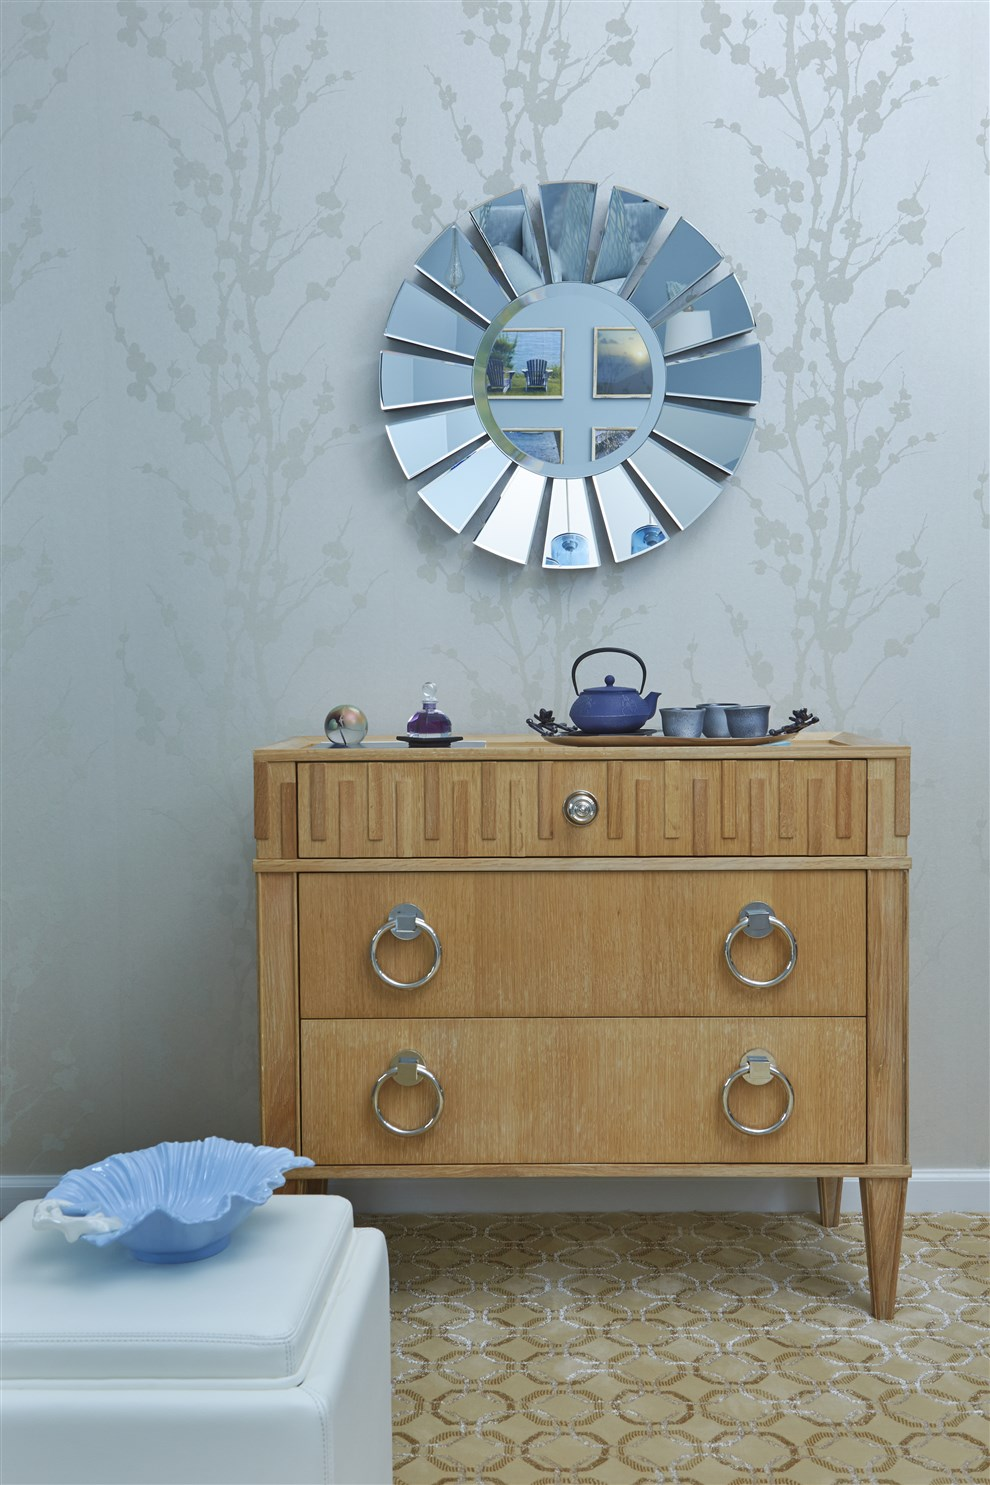 Wooden cabinet and stylish mirror on the wall